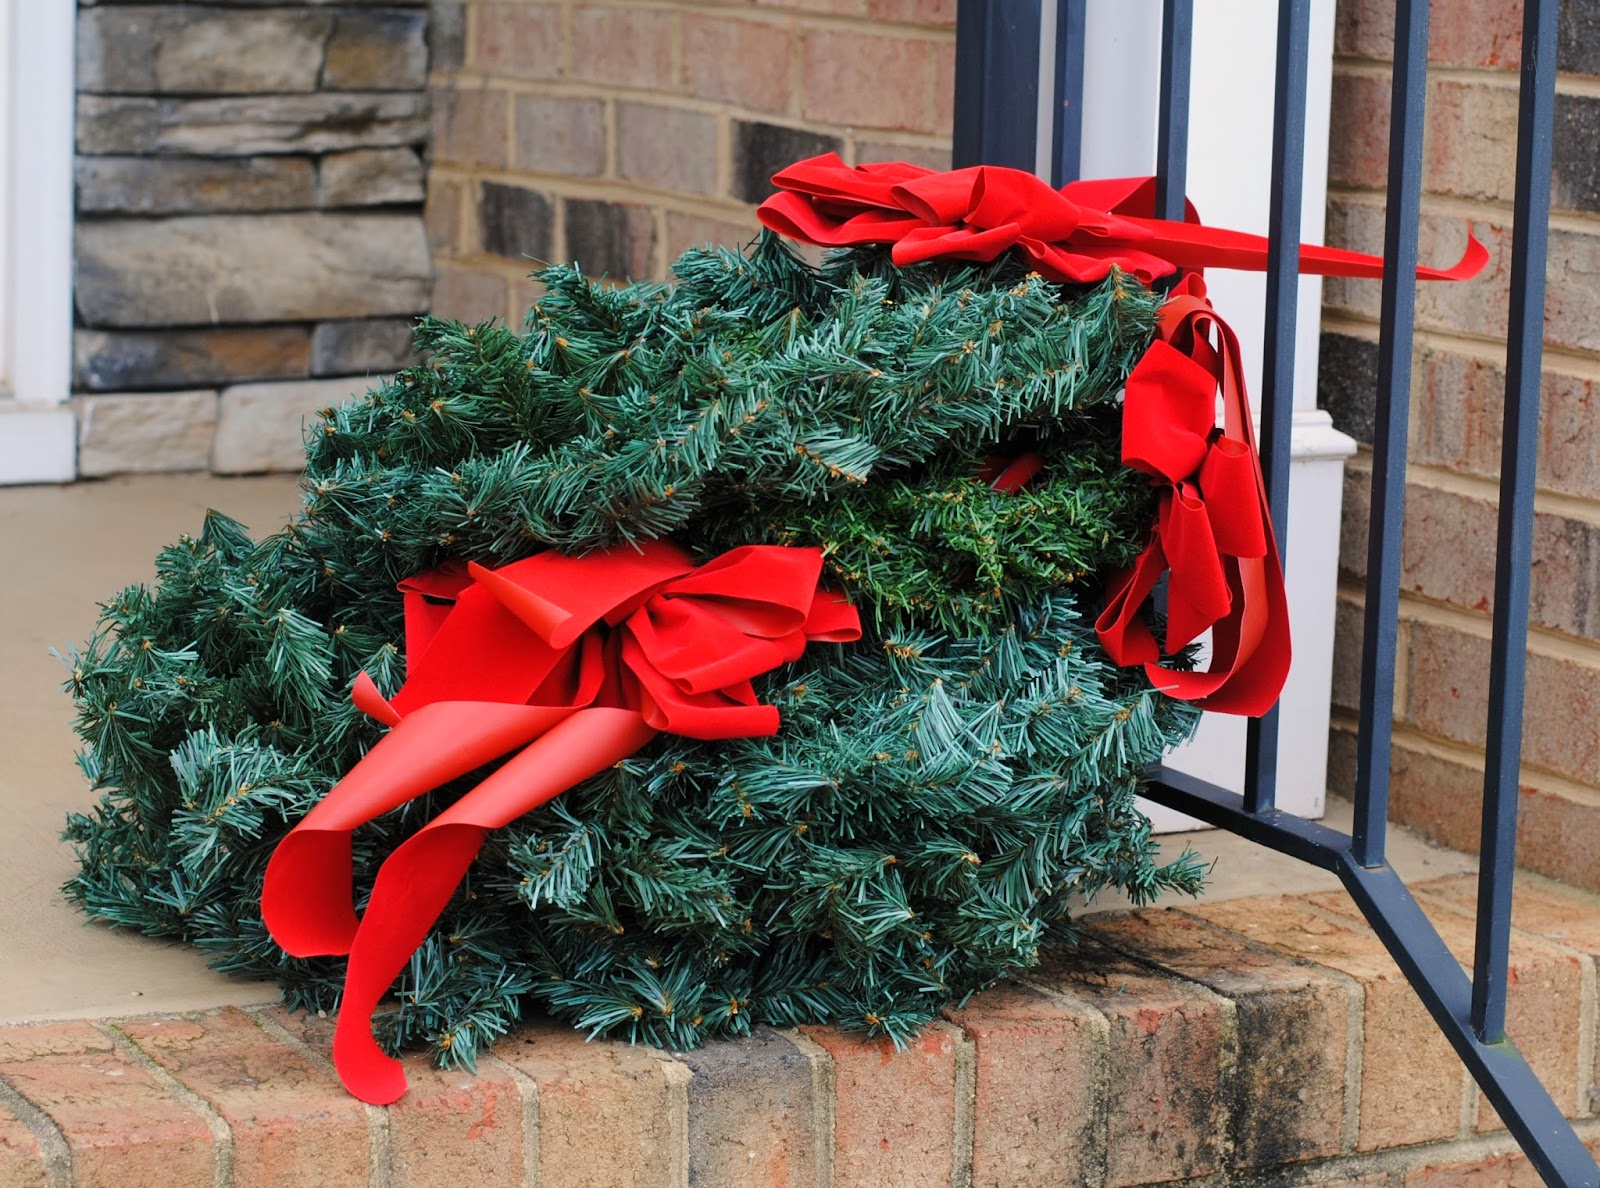 Living With Imperfection: Christmas Un-decorating